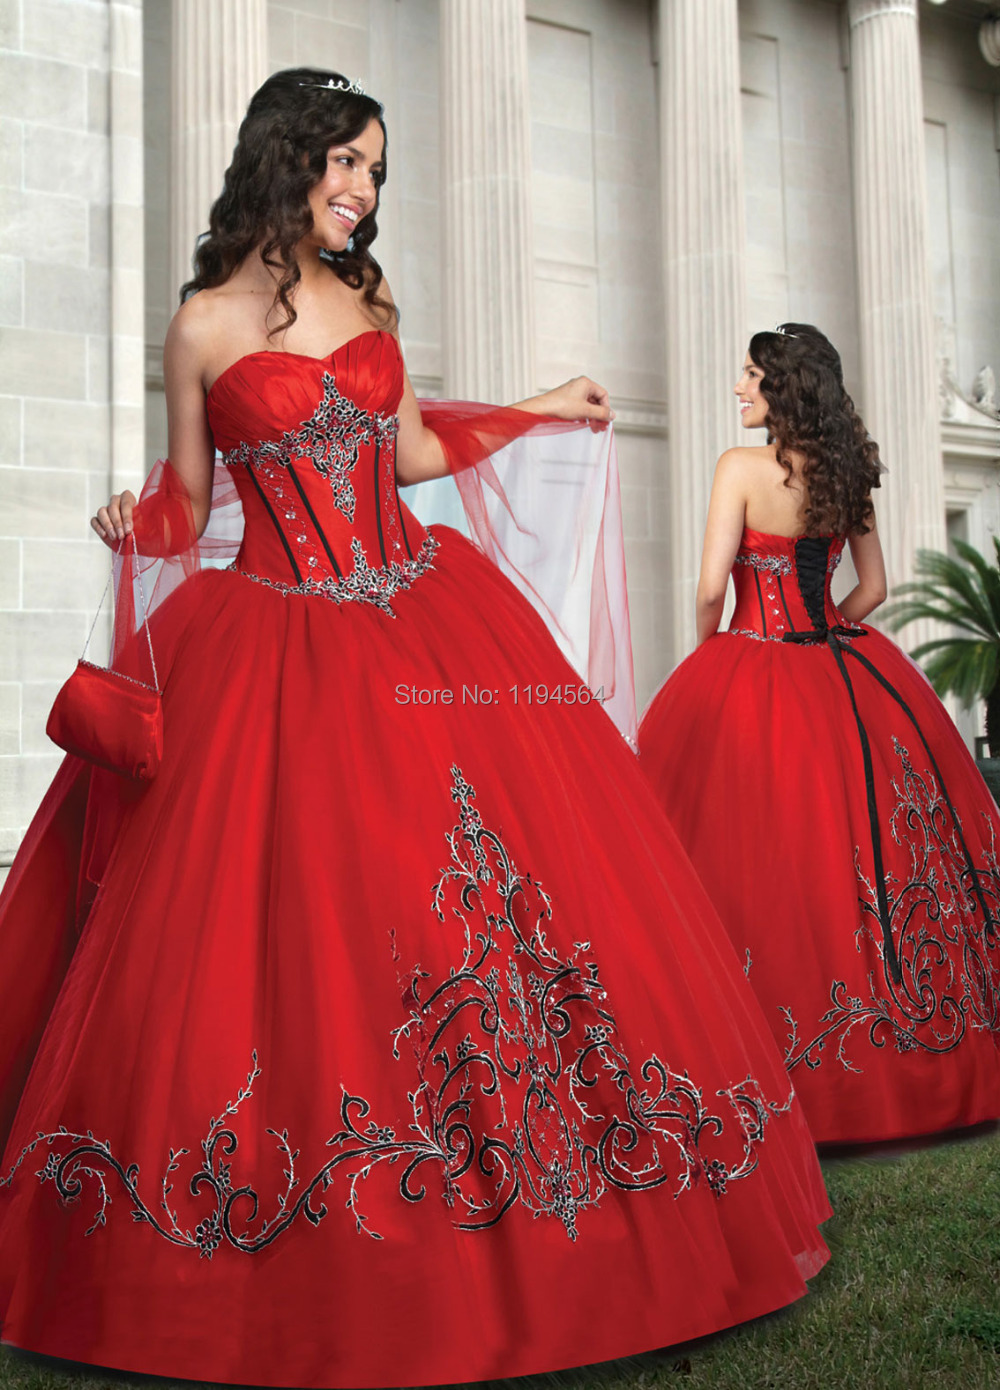 Dress up for masquerade party - Vintage Embroidery Quinceanera Dresses 2015 Masquerade Ball Gown Organza Sweetheart Off The Shoulder Low Back Bq256